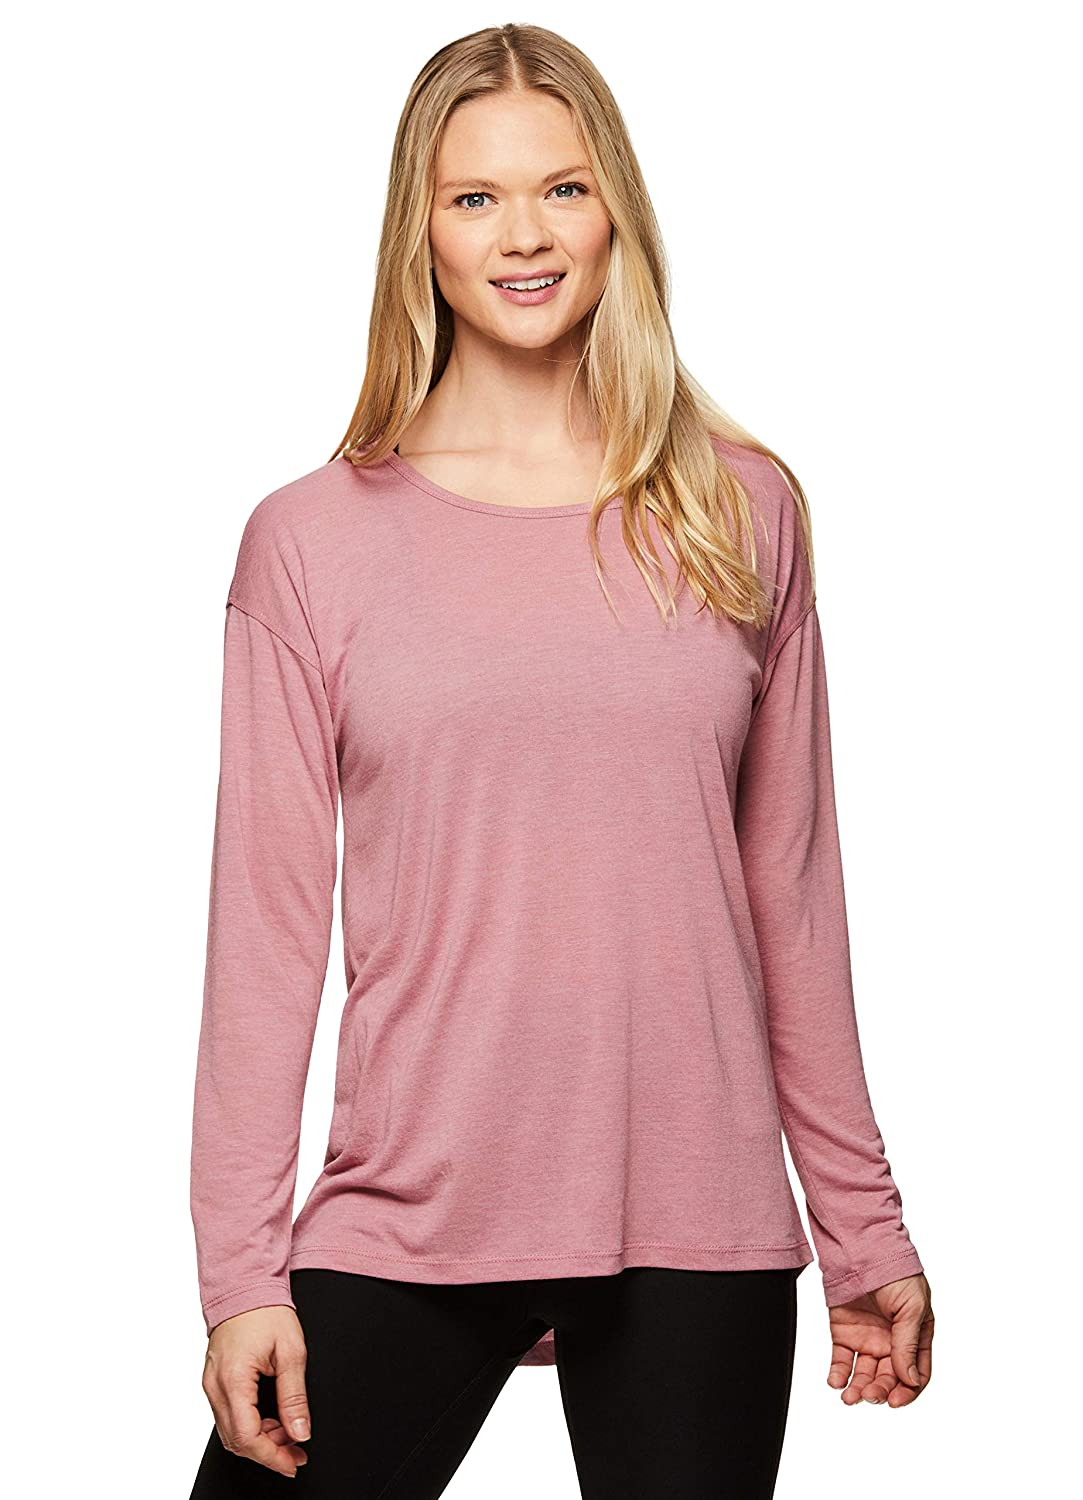 b031dc169 Amazon.com: RBX Active Women's Long Sleeve Lightweight Open Back Yoga Top:  Clothing